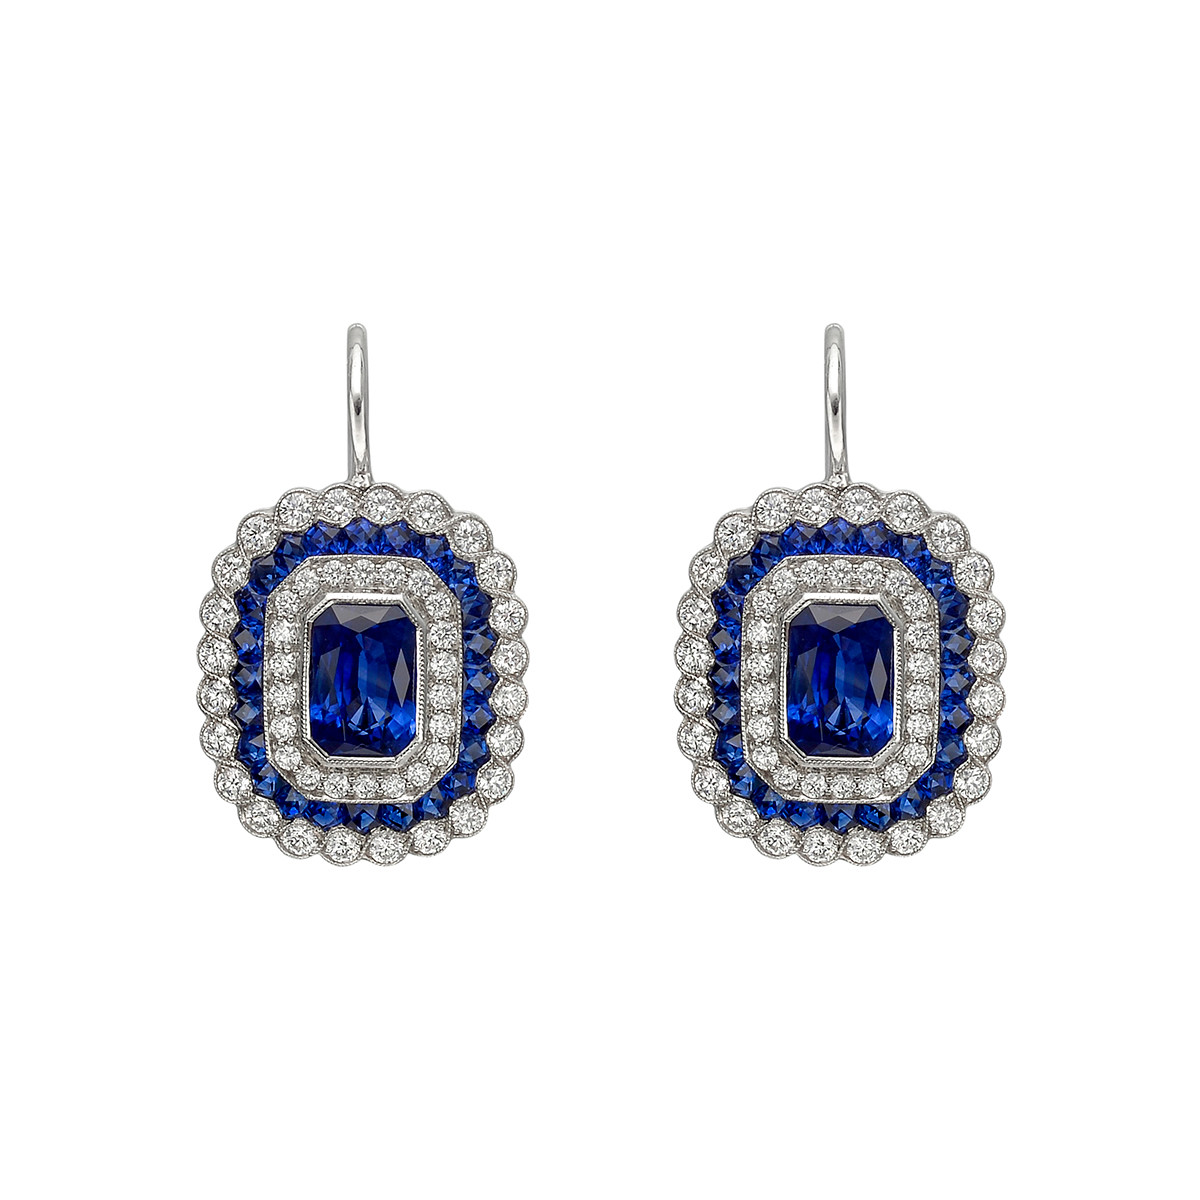 Emerald-Cut Sapphire & Diamond Cluster Drop Earrings